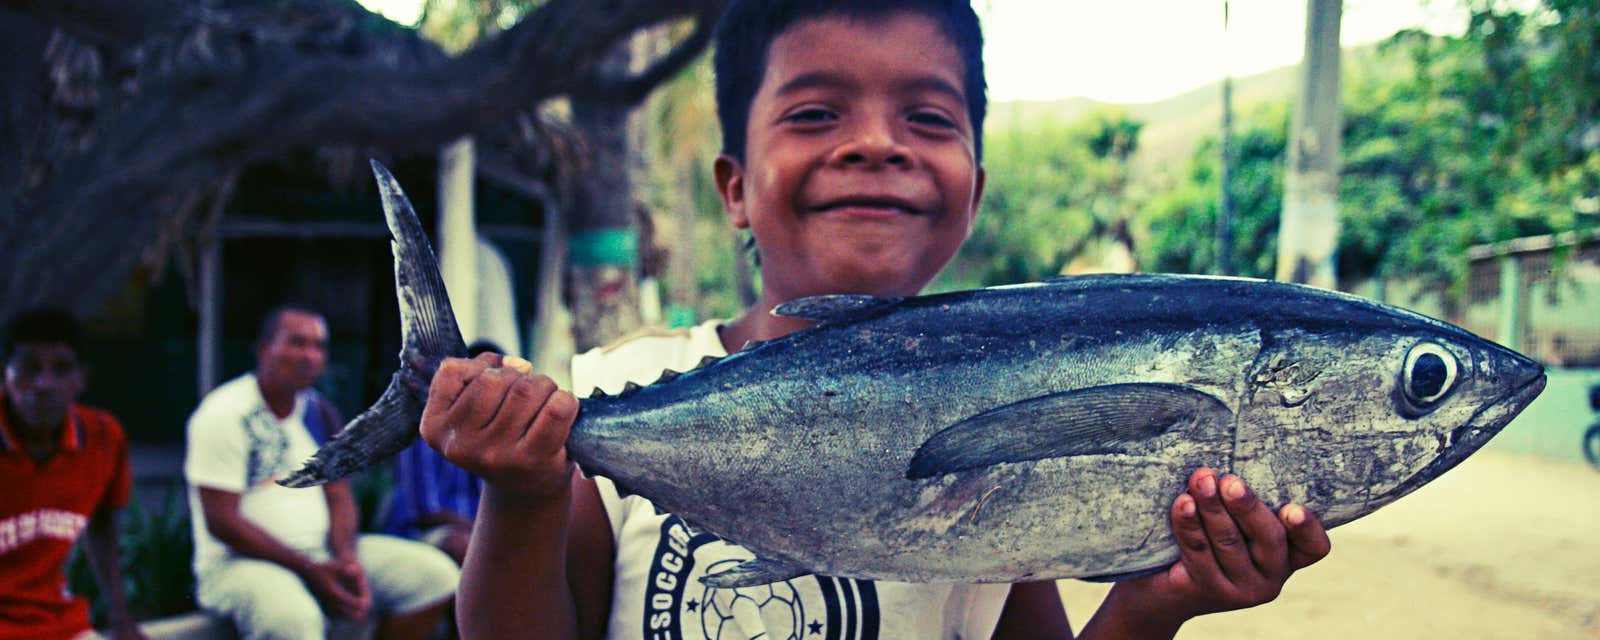 Catch of the day, Taganga, Colombia